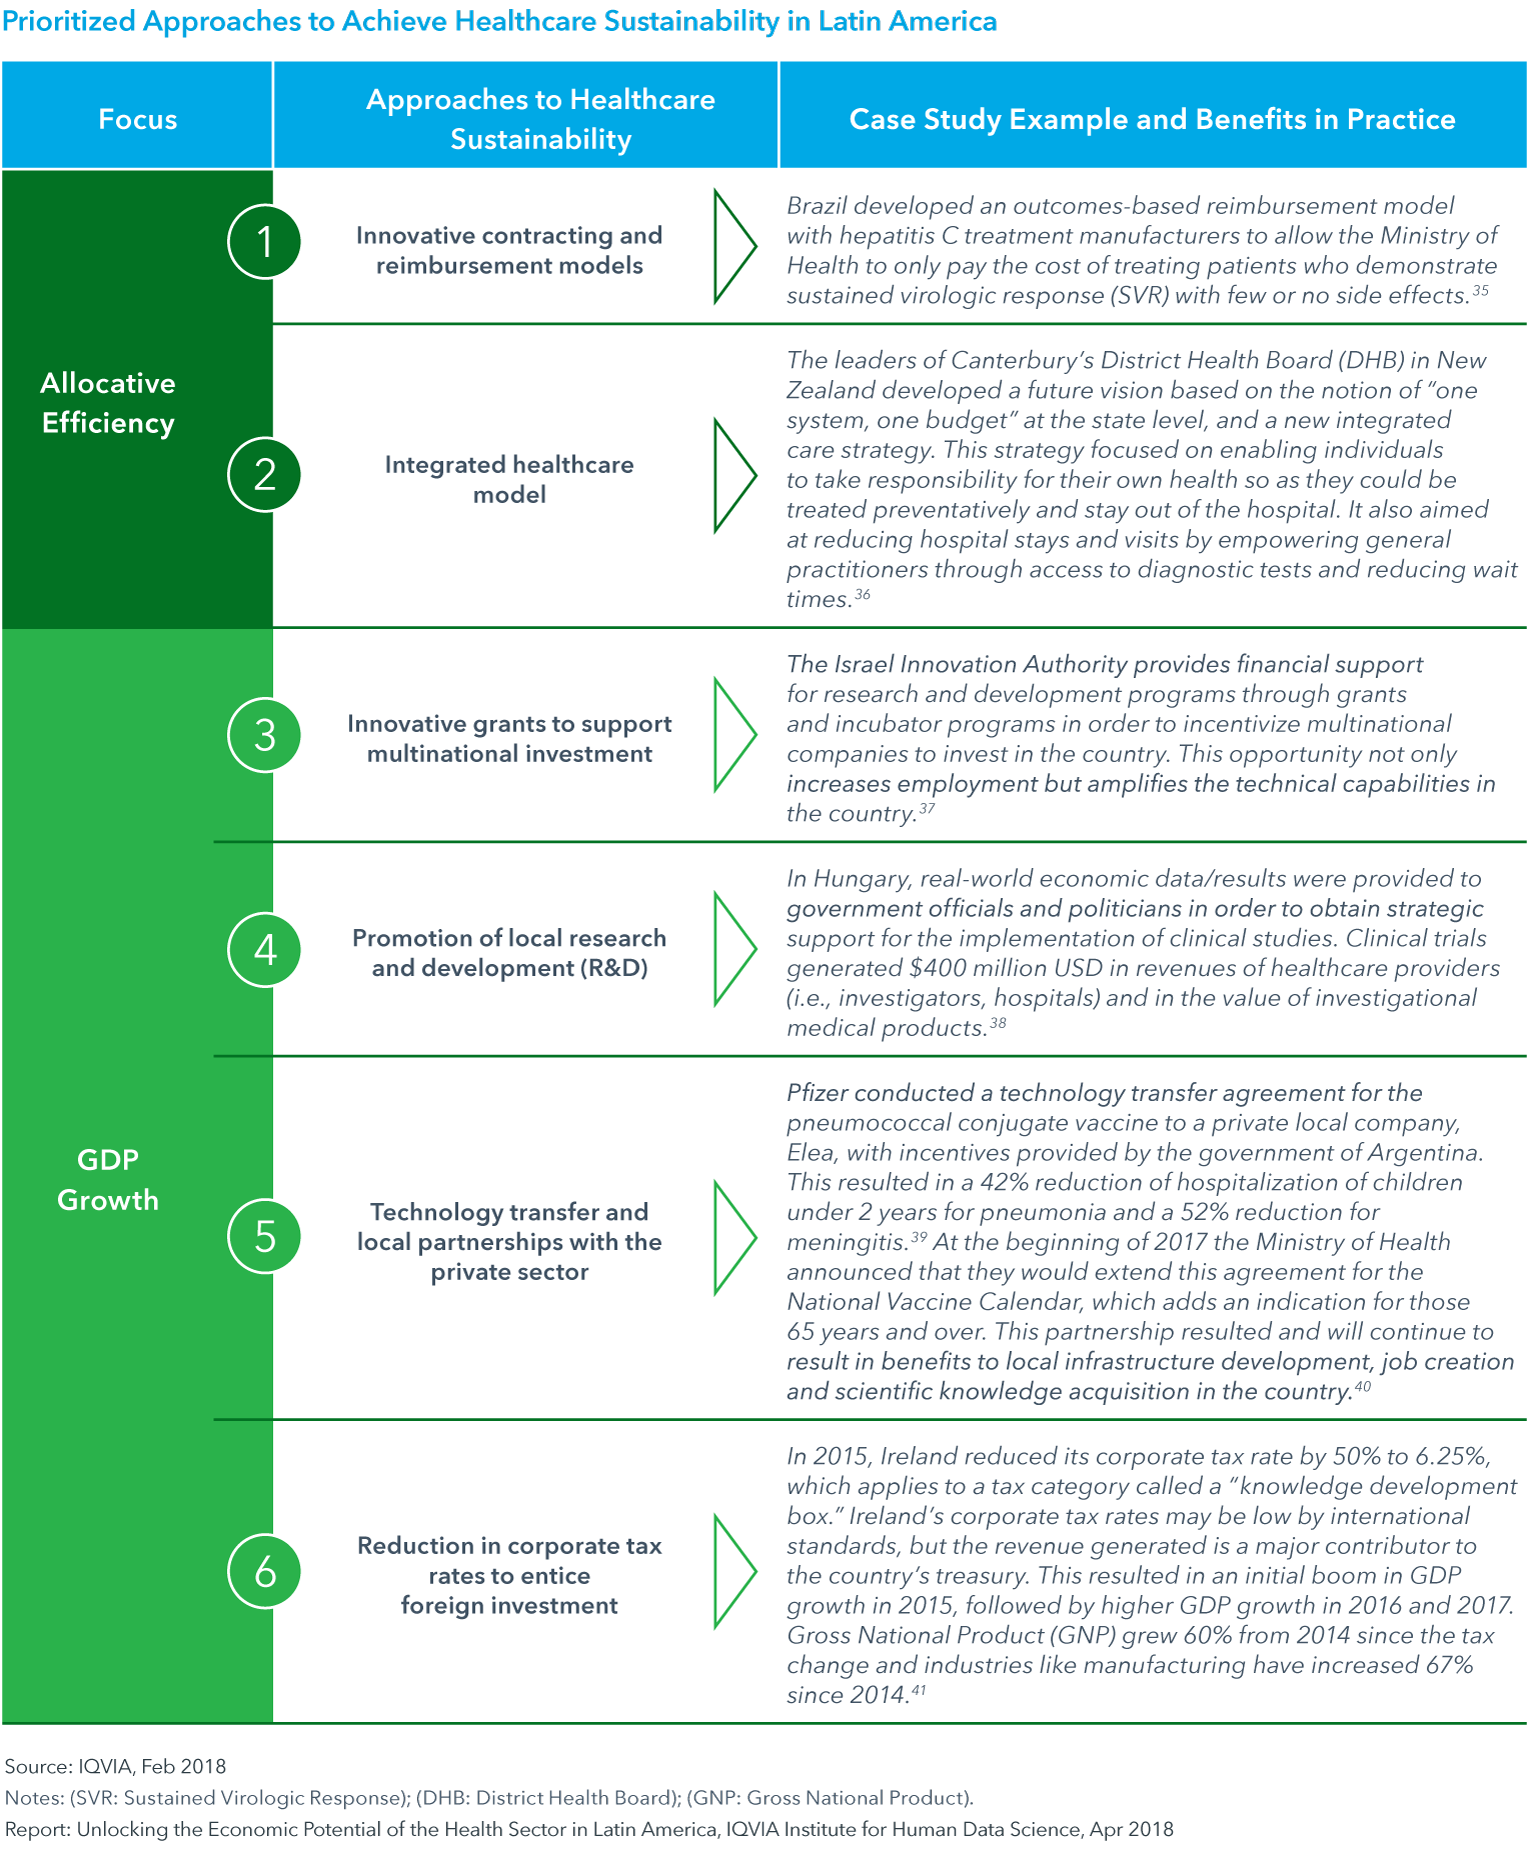 Chart 7: Prioritized Approaches to Achieve Healthcare Sustainability in Latin America